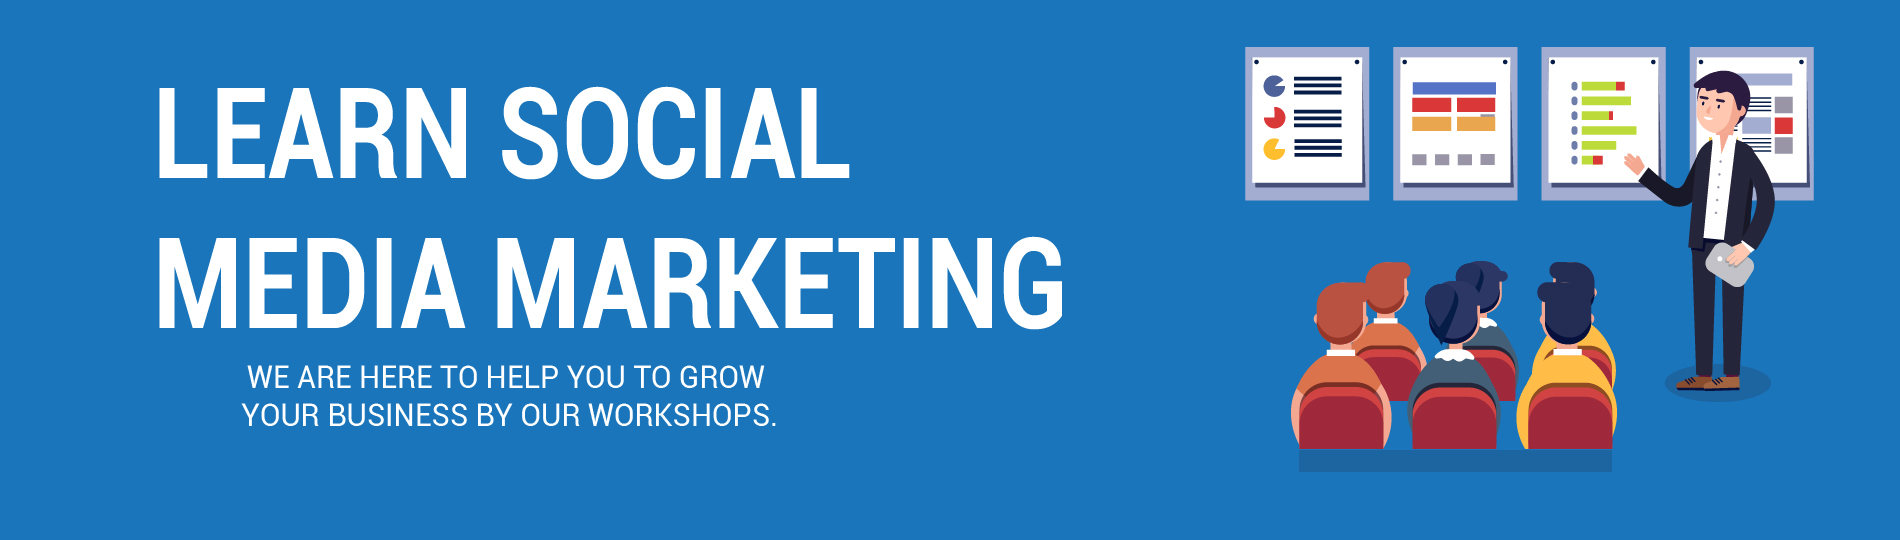 Learn Social Media Marketing in pune